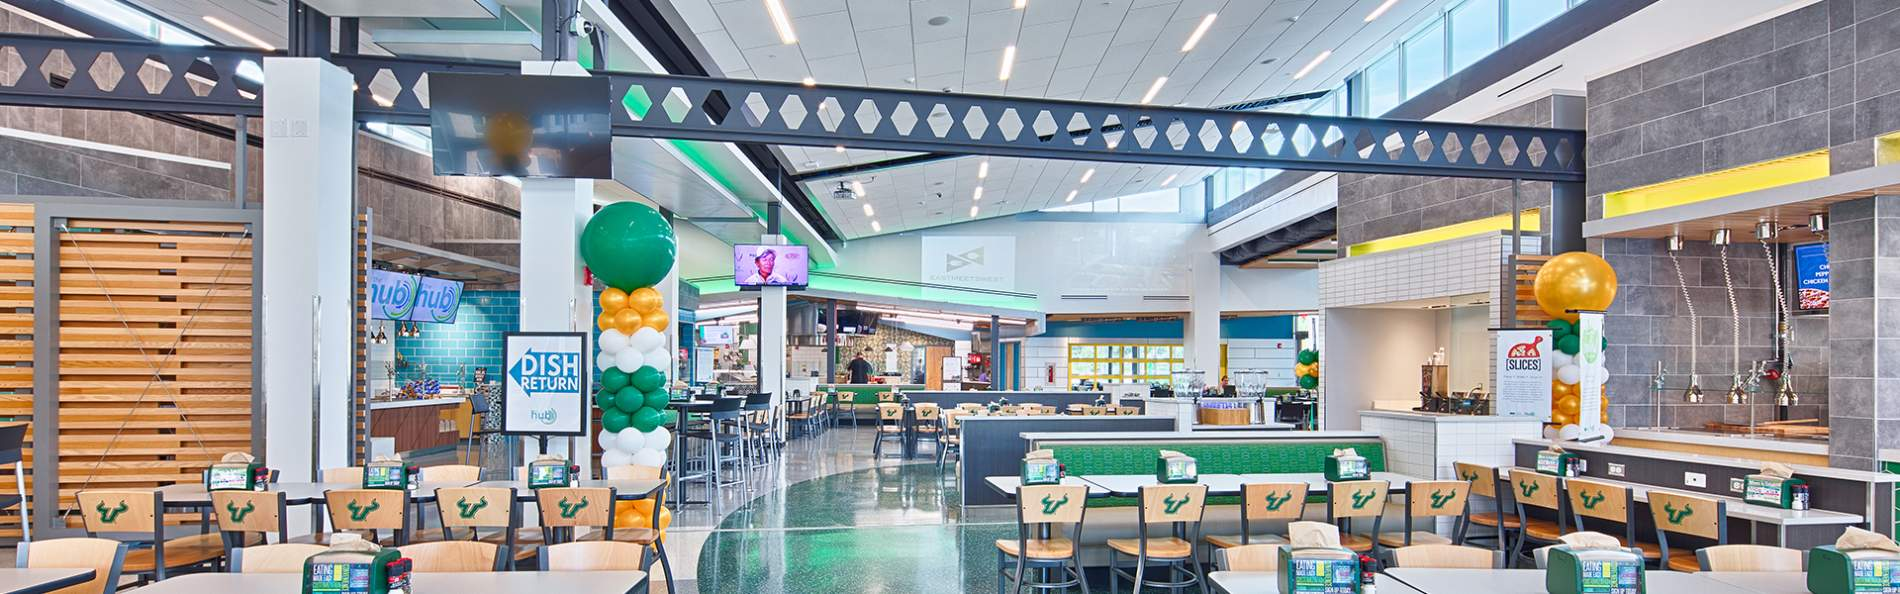 USF green dining hall